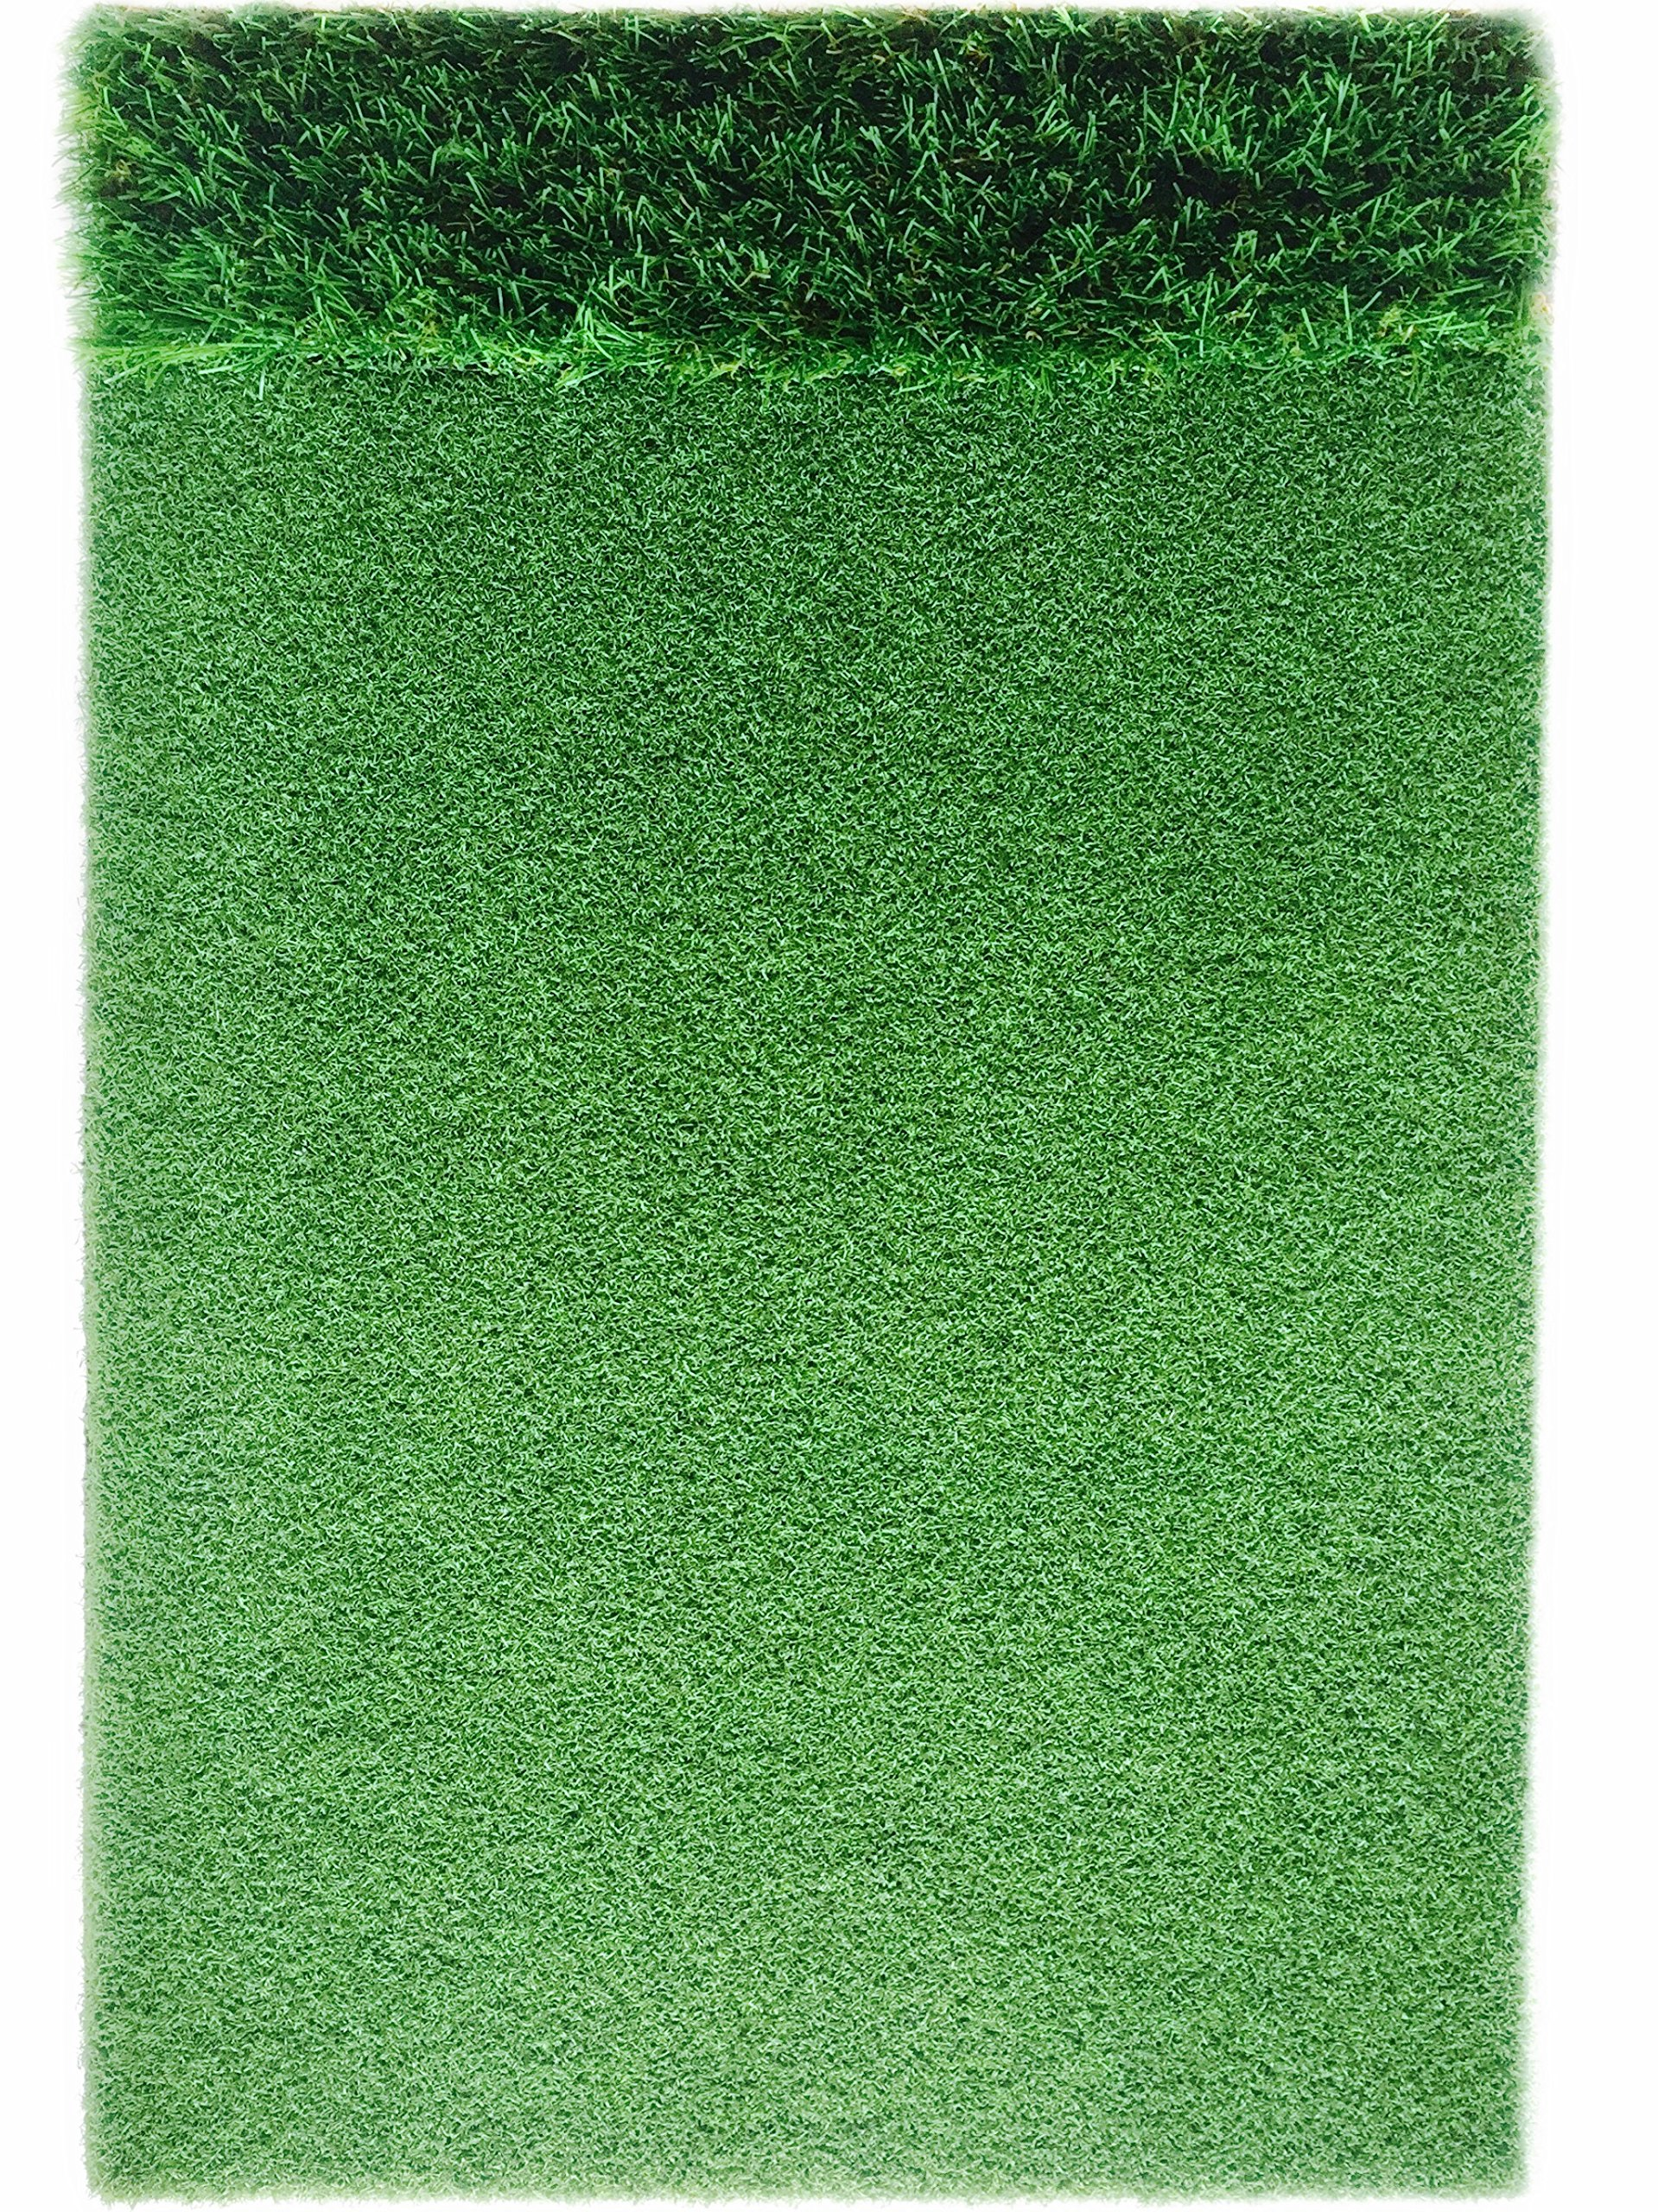 StrikeDown Dual-Turf Pro Golf Hitting Mat | Fairway and Rough Simulation Training Aid with Built-in Shockpad for Indoor and Outdoor Practice (36-Inch x 24-Inch) by Motivo Golf (Image #2)